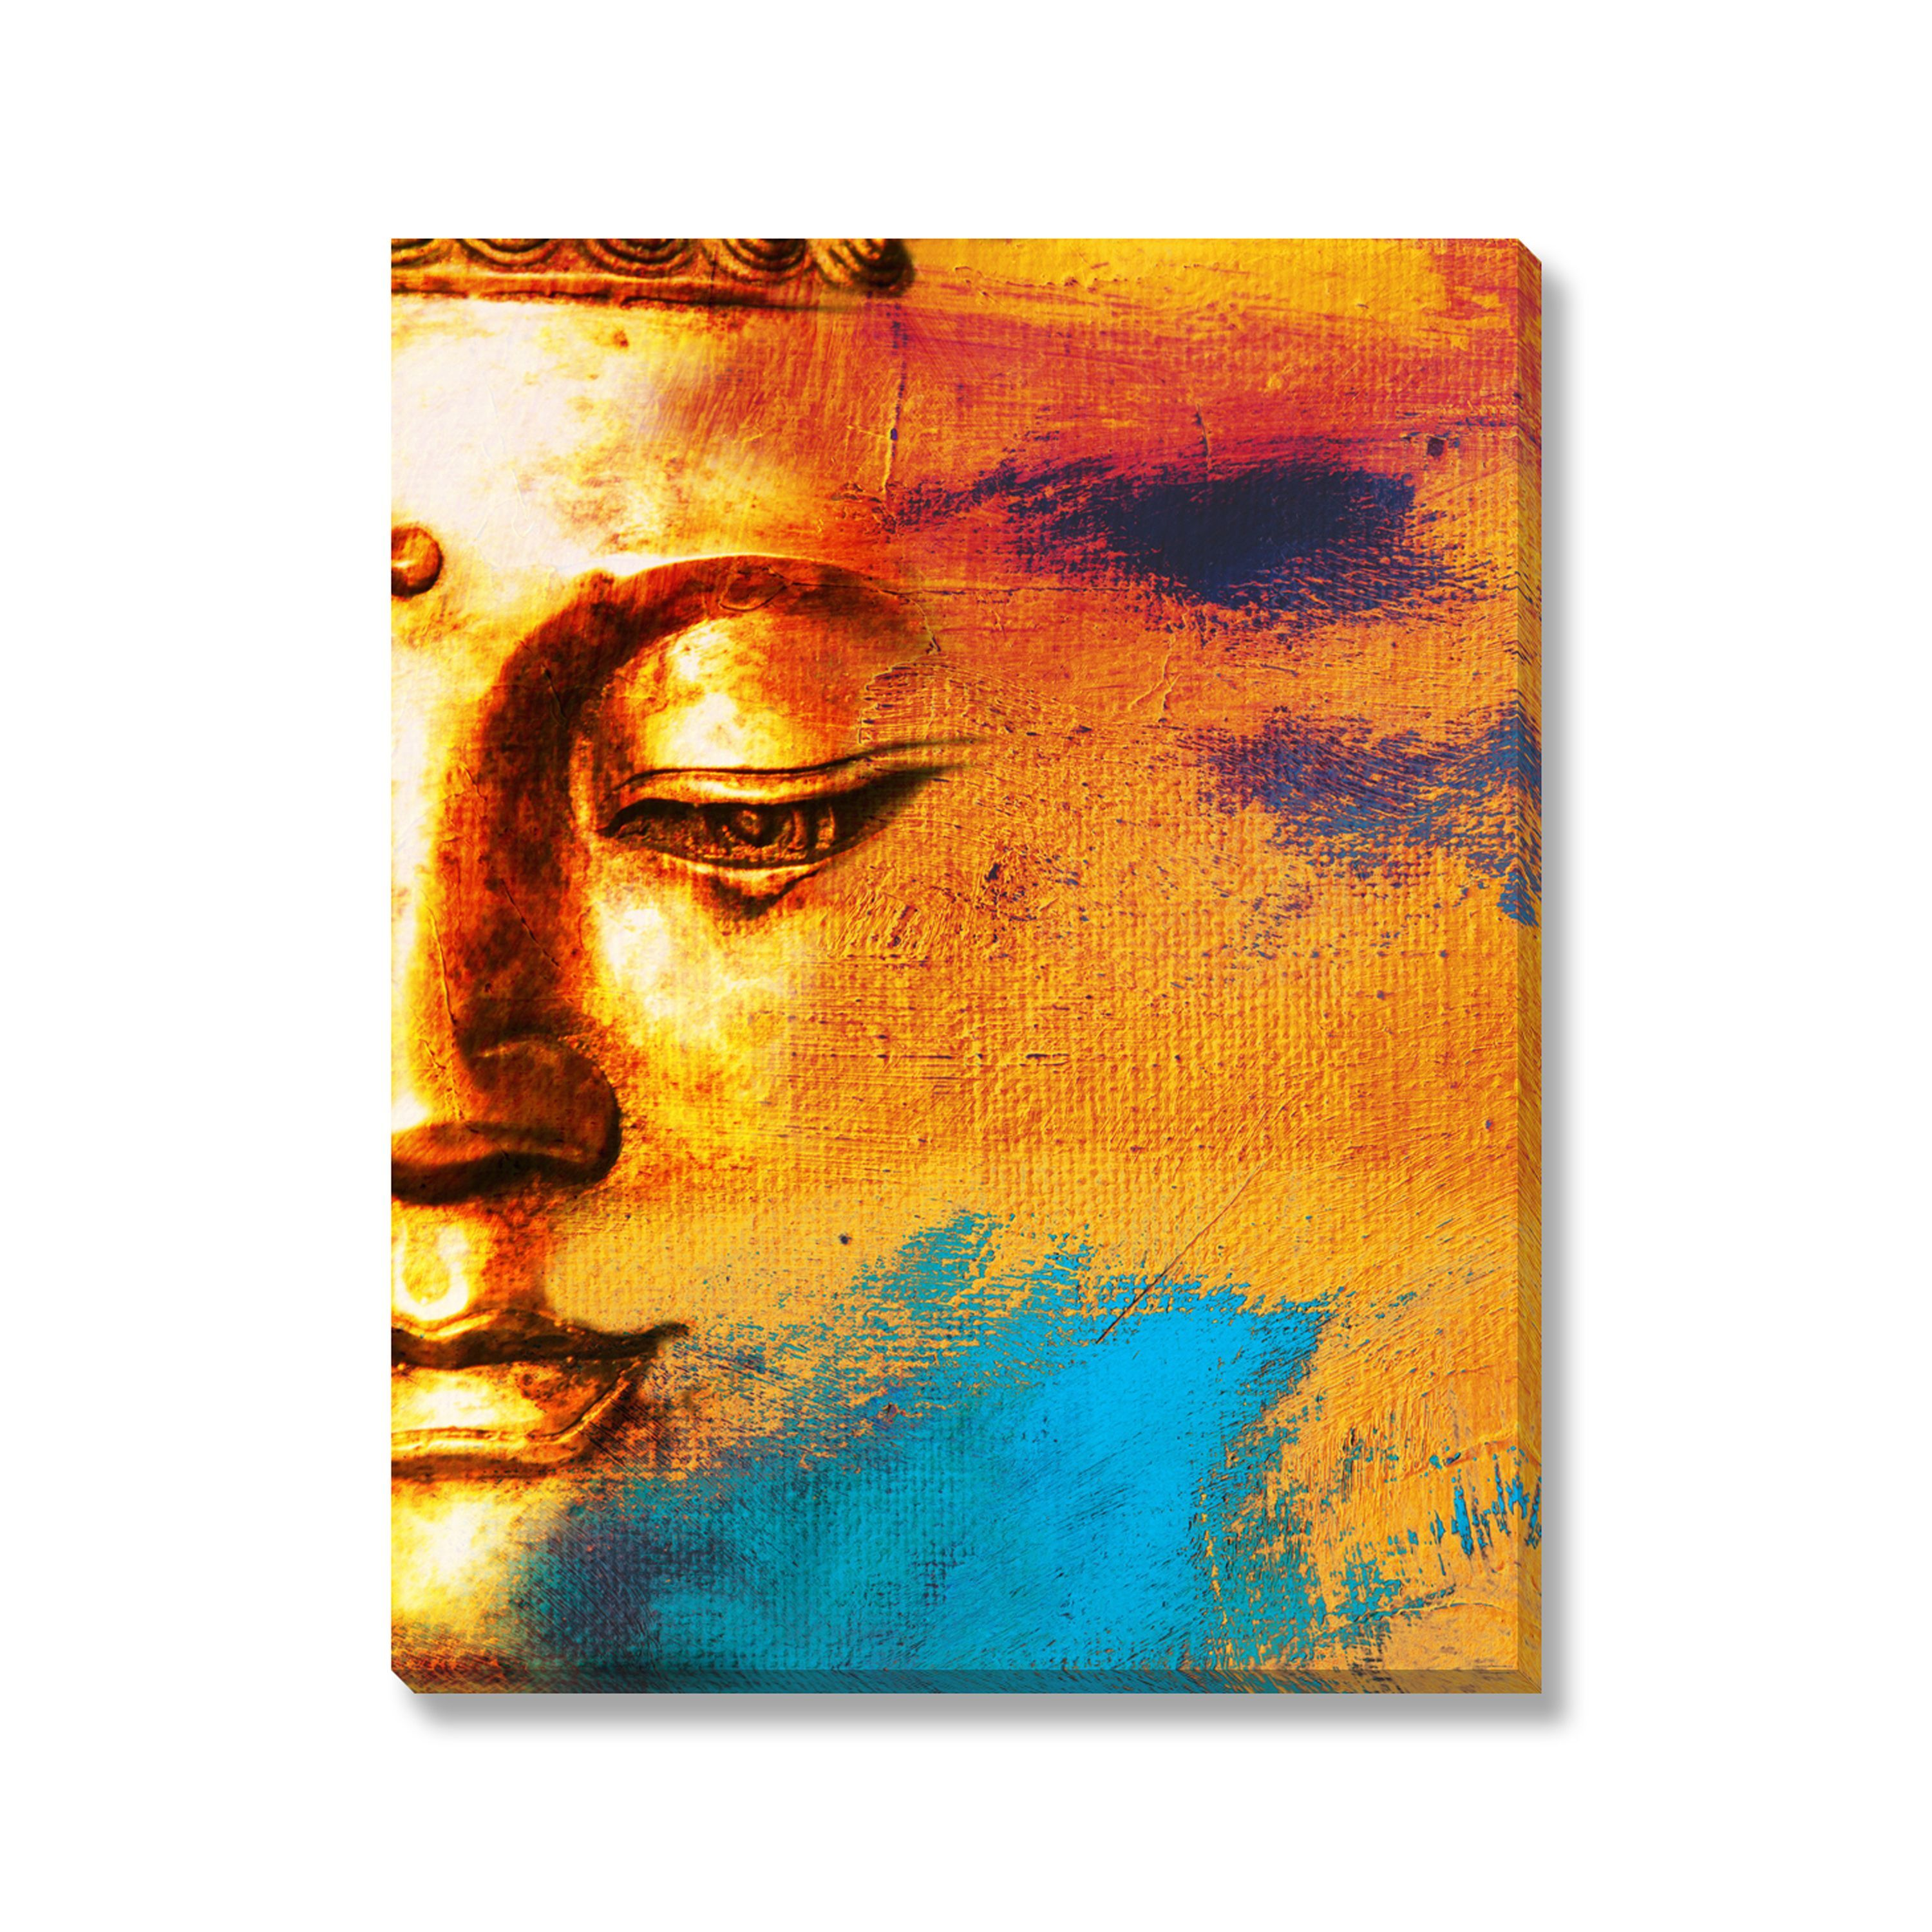 Gallery Direct Leshabu 'Abstract Buddha' Gallery Wrapped